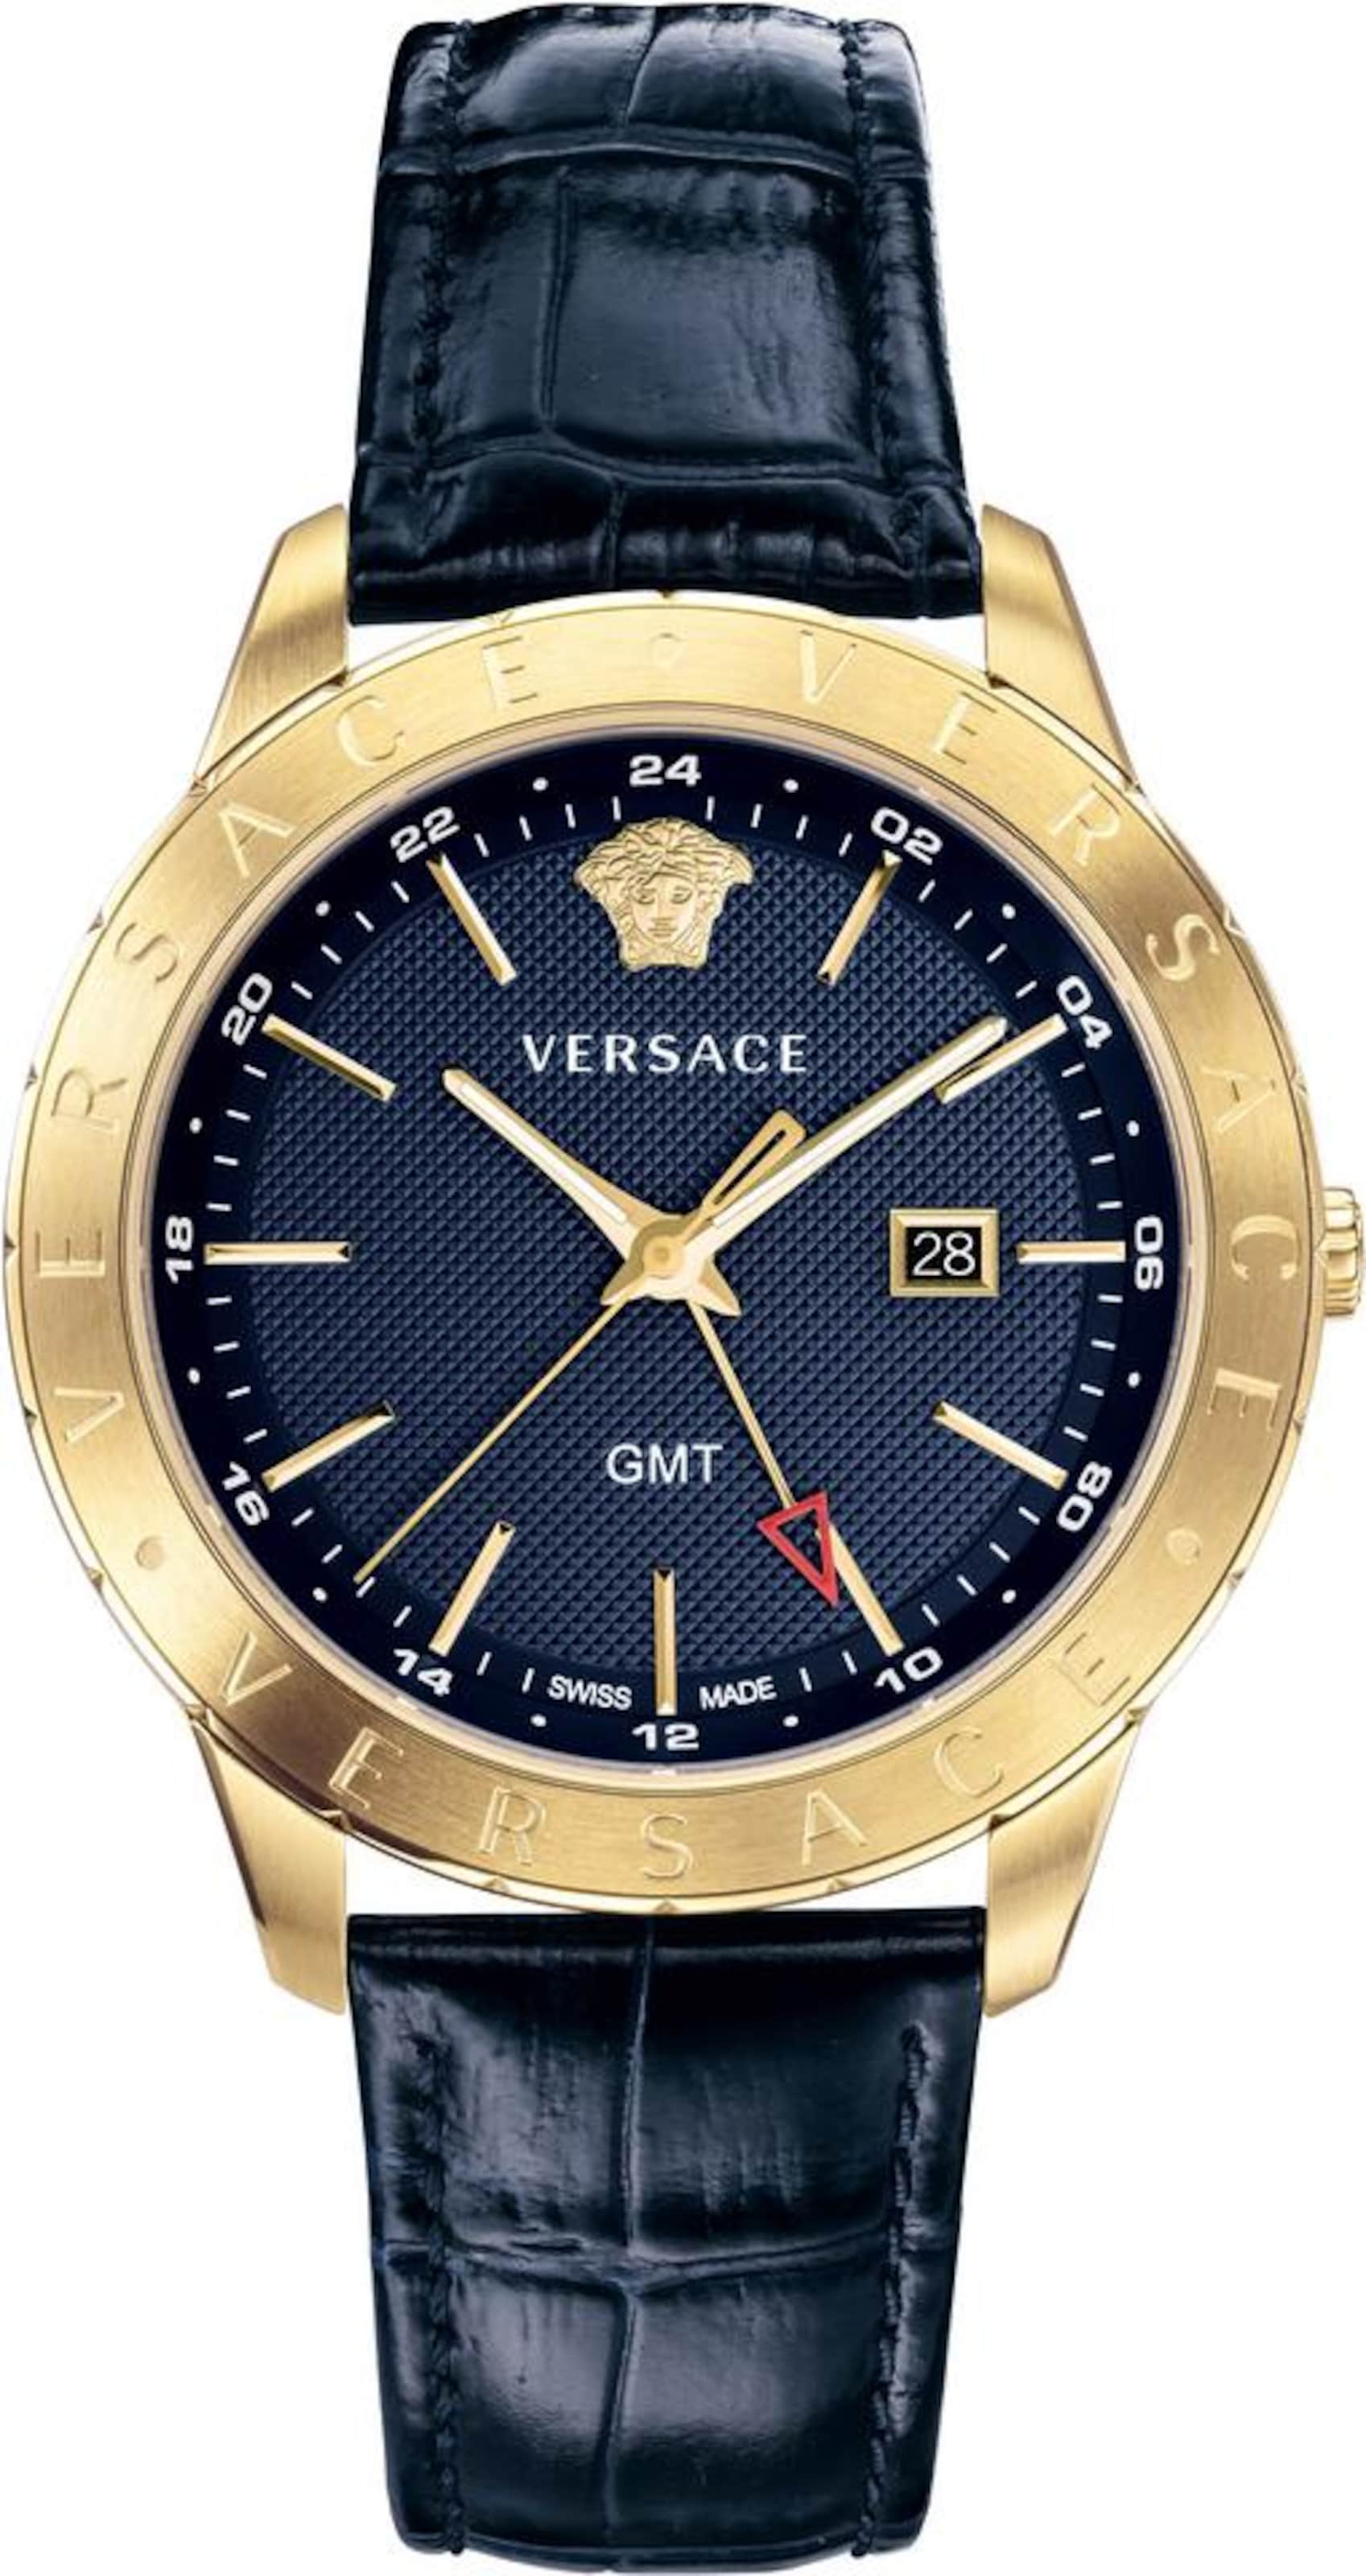 In 'univers' Uhr Uhr Versace NachtblauGold Versace O0Pnwk